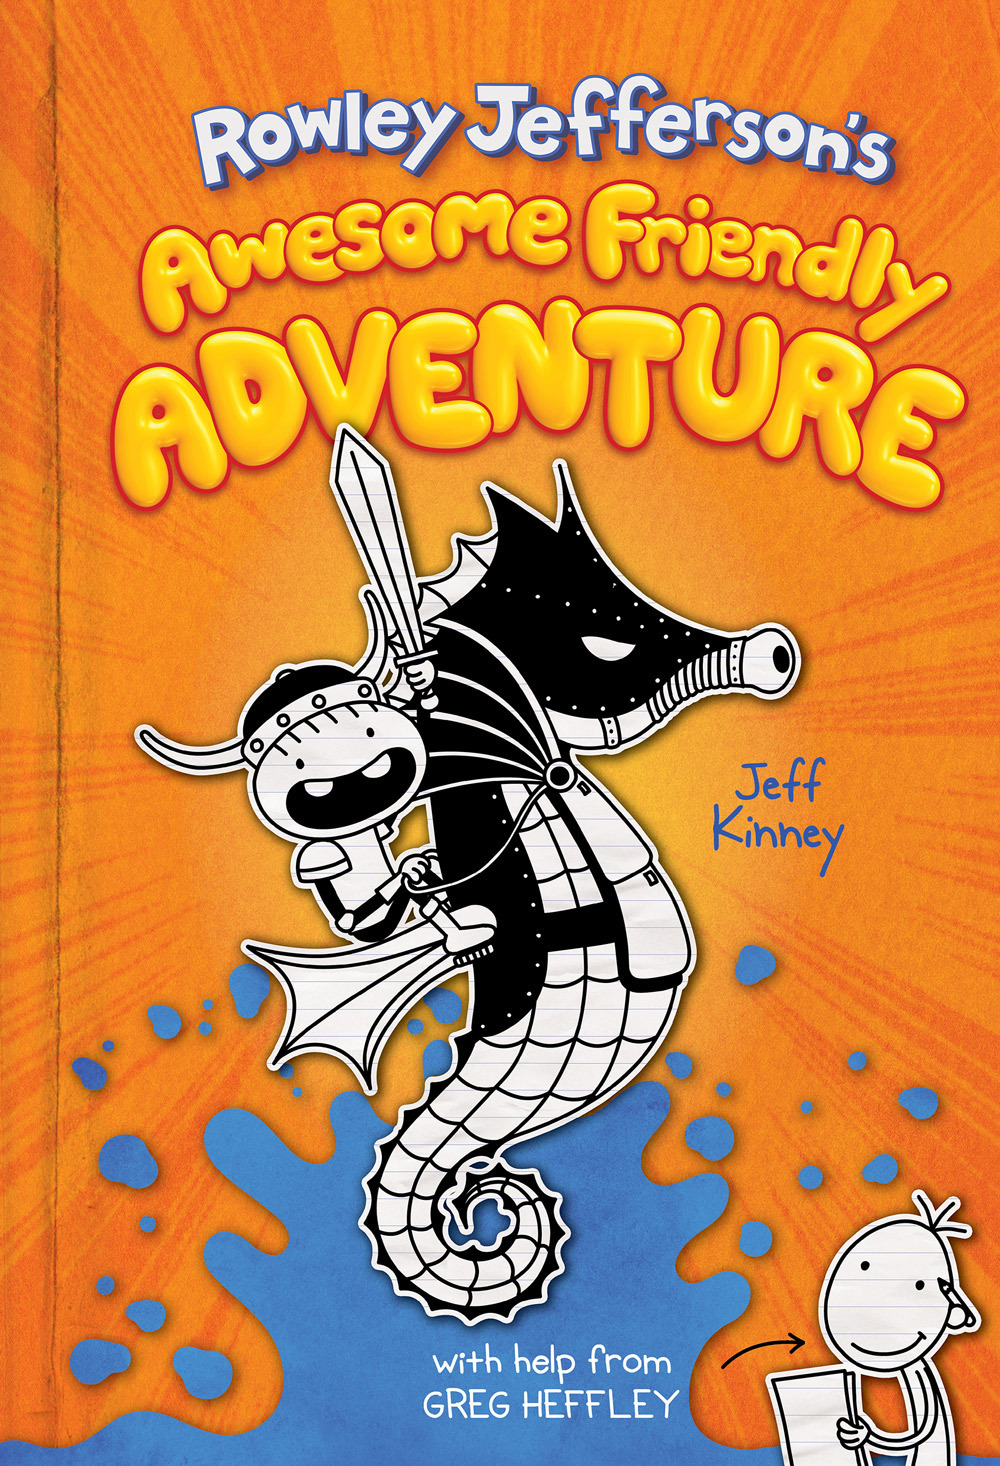 Jeff Kinney Has Wimpy Kid Spinoff Book Out In April News 4 Buffalo